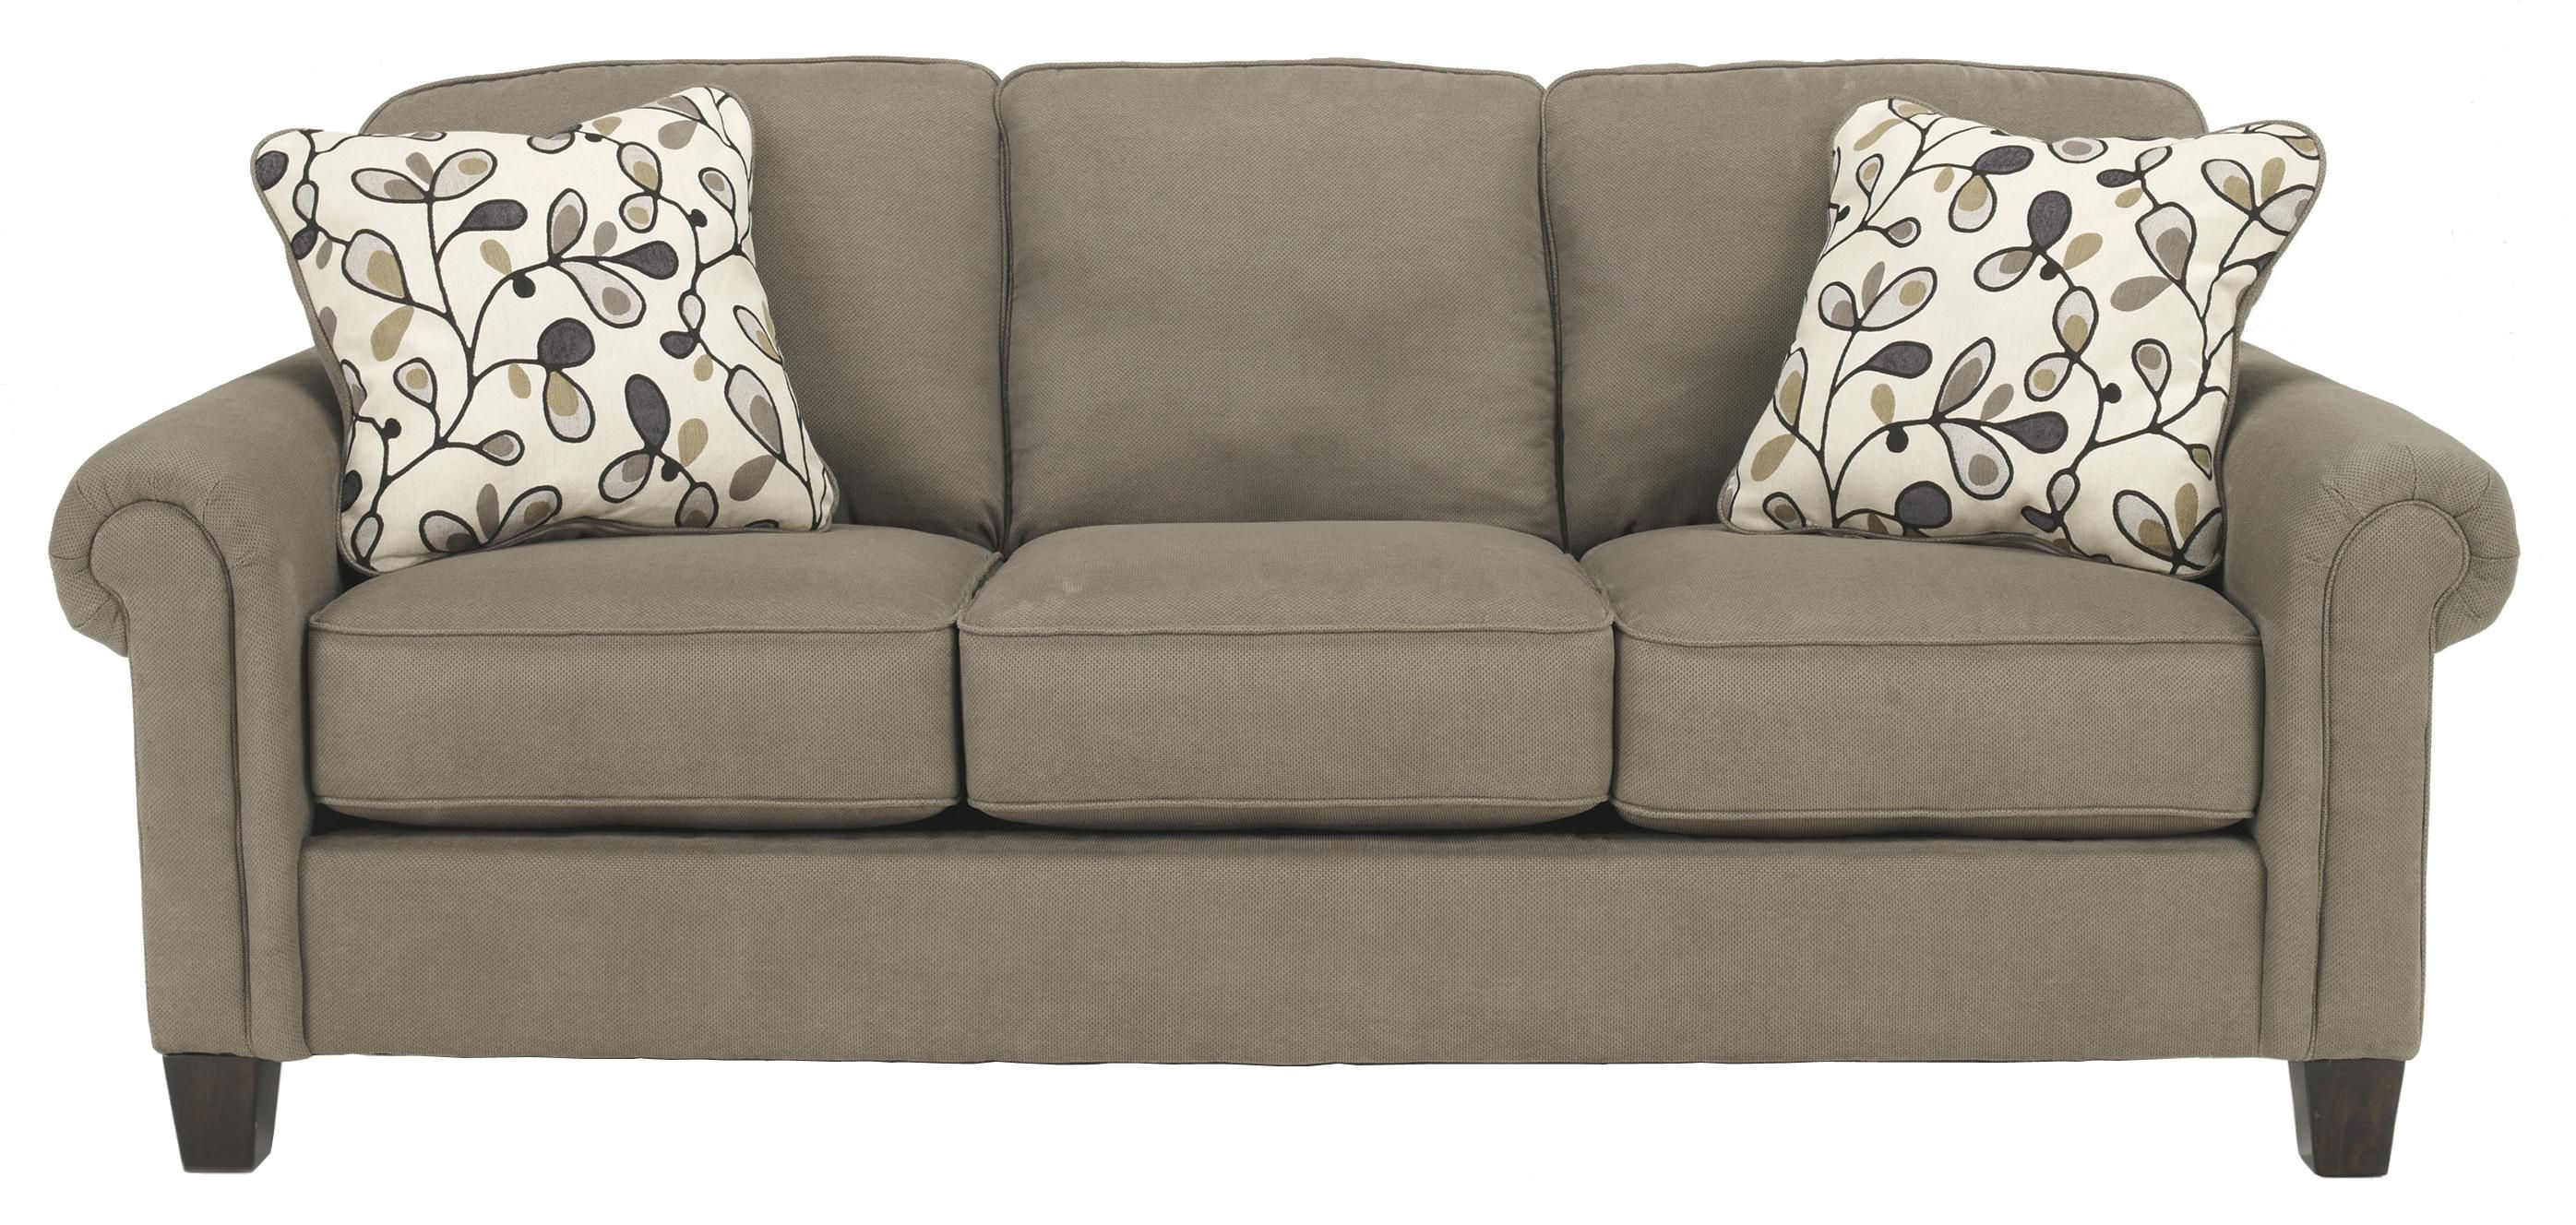 Gusti Dusk Queen Sofa Sleeper by Ashley Furniture